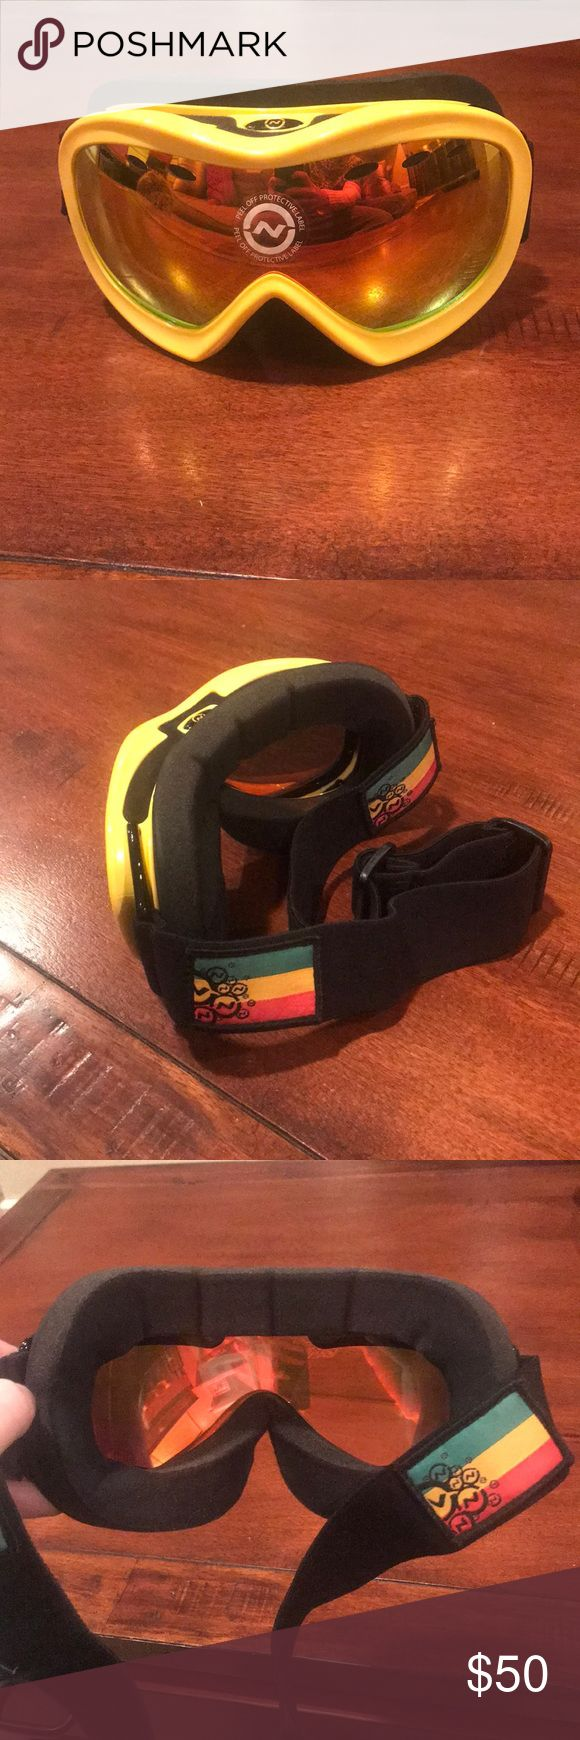 Optic Nerve Ski/Snowboard Goggles! Brand new Optic Nerve Goggles with protective label still on. Yellow frame with a reflective orange/yellow/red lense. Adjustable strap-super nice! NWOT Optic Nerve Accessories Sunglasses